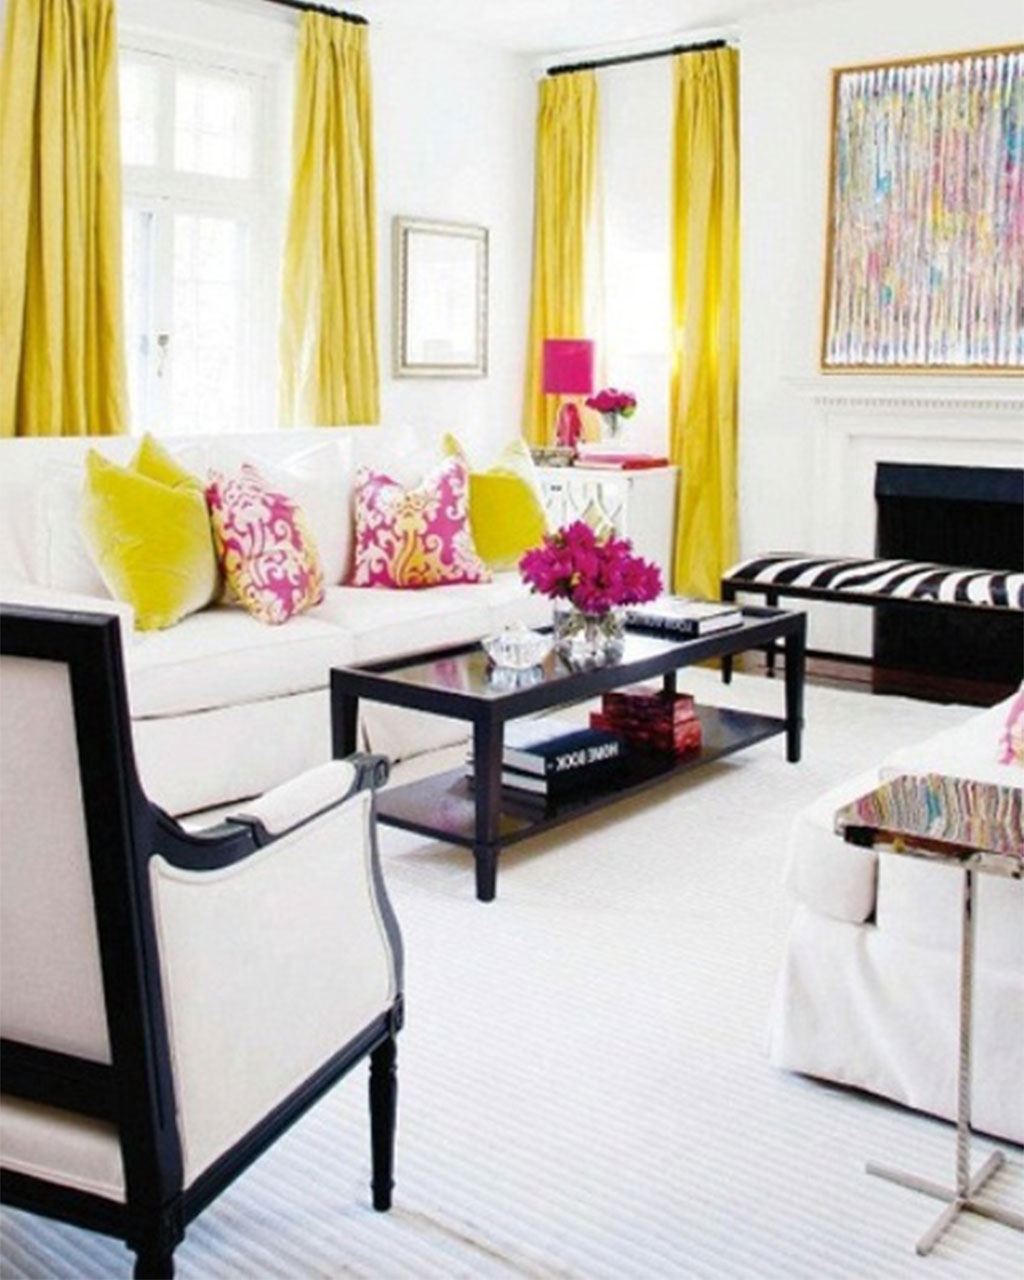 Living Room Decorating Ideas: 36 Living Room Decorating Ideas That Smells Like Spring